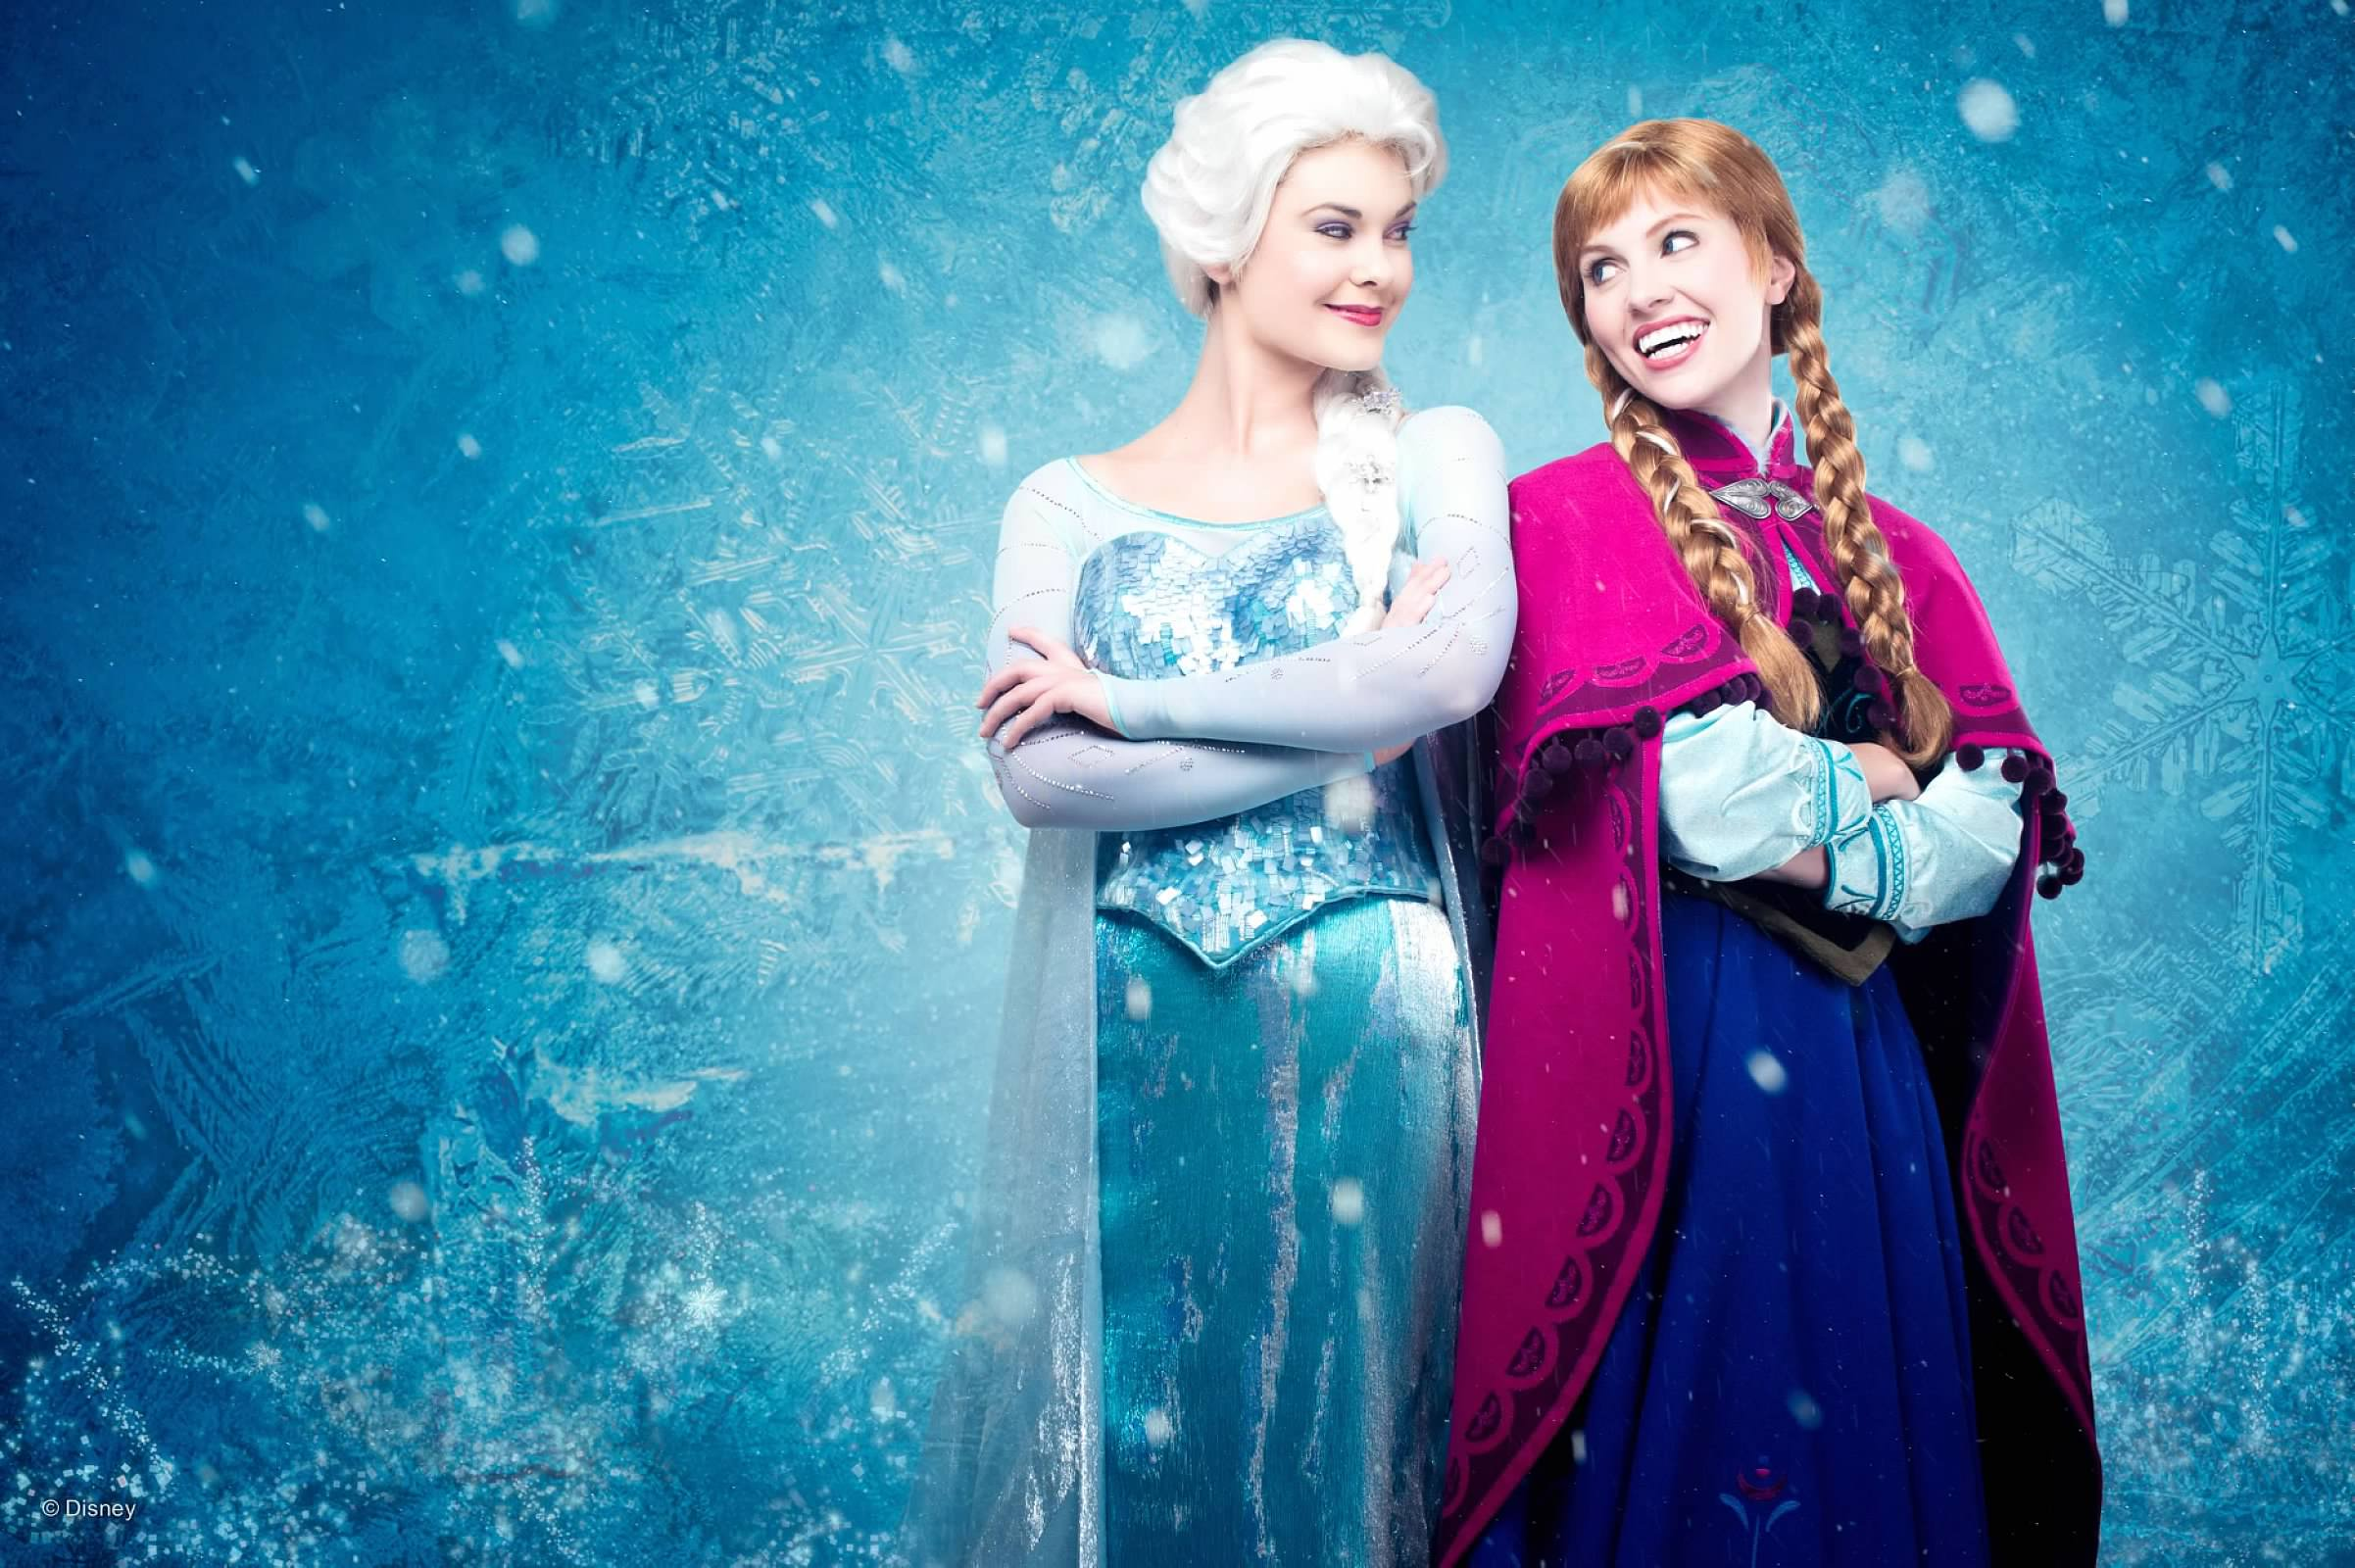 Queen Elsa & Princess Anna are located in Norway's Pavilion in Epcot's World Showcase